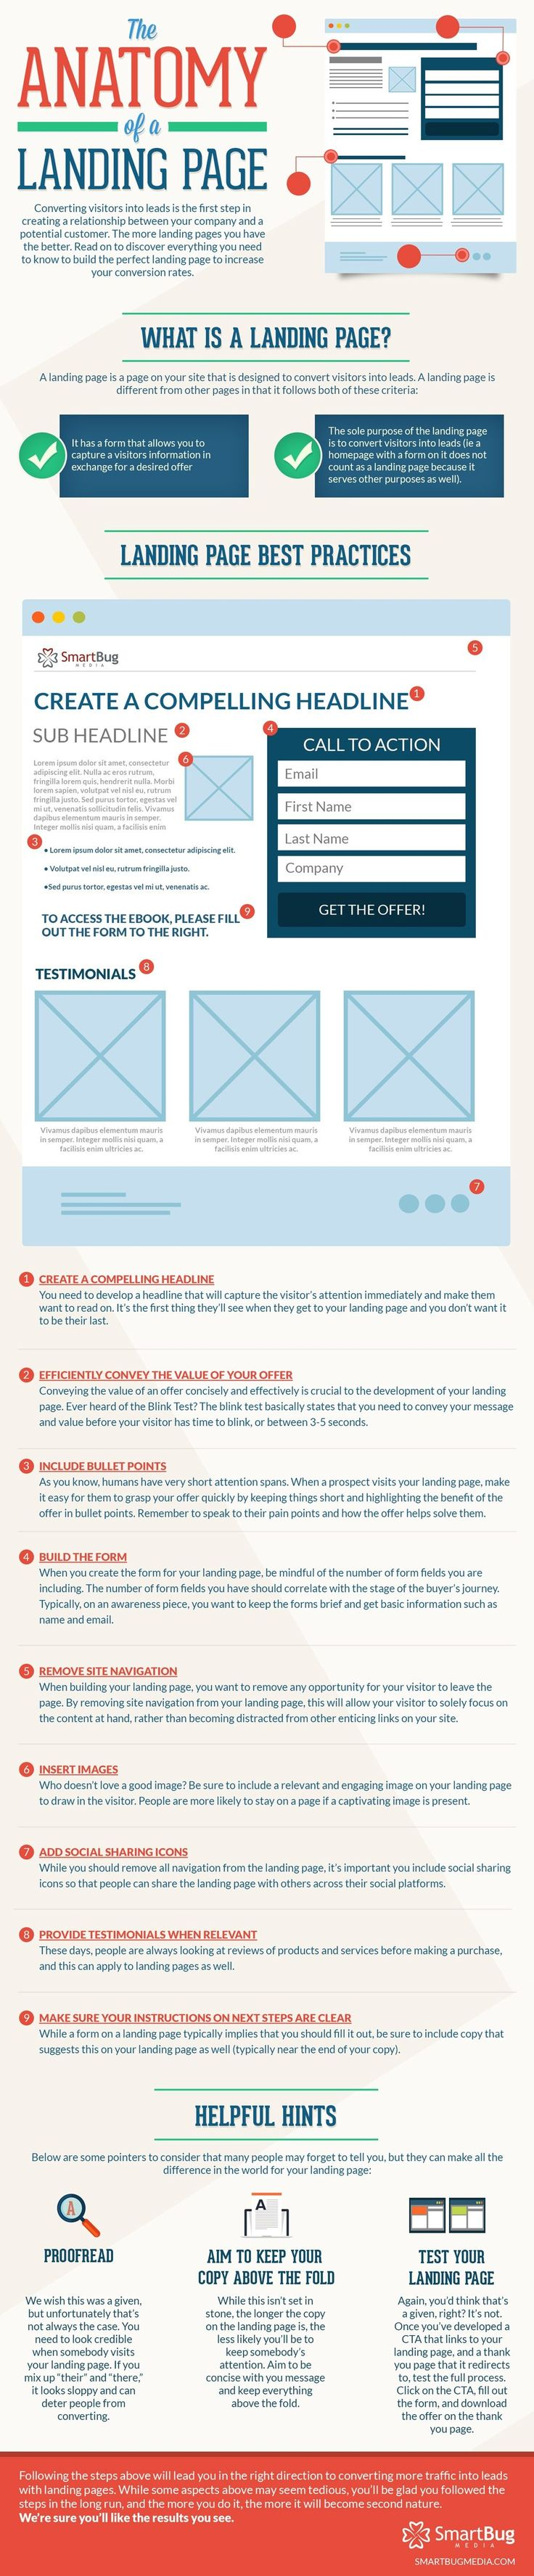 Landing Page Design Tips: How to.... [Infographic]